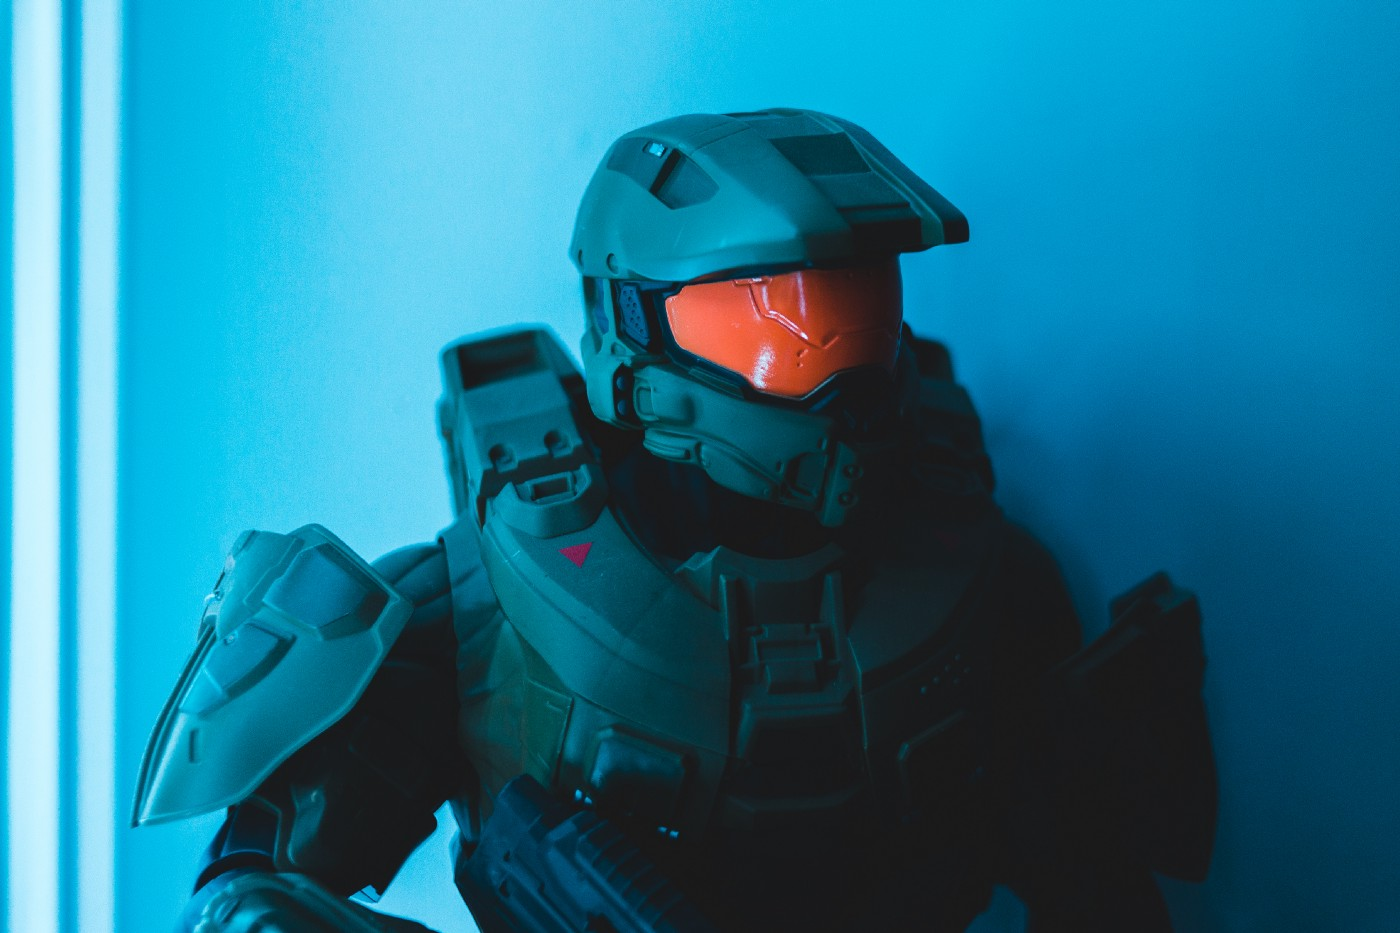 A photograph of a Masterchief figurine from the game Halo.